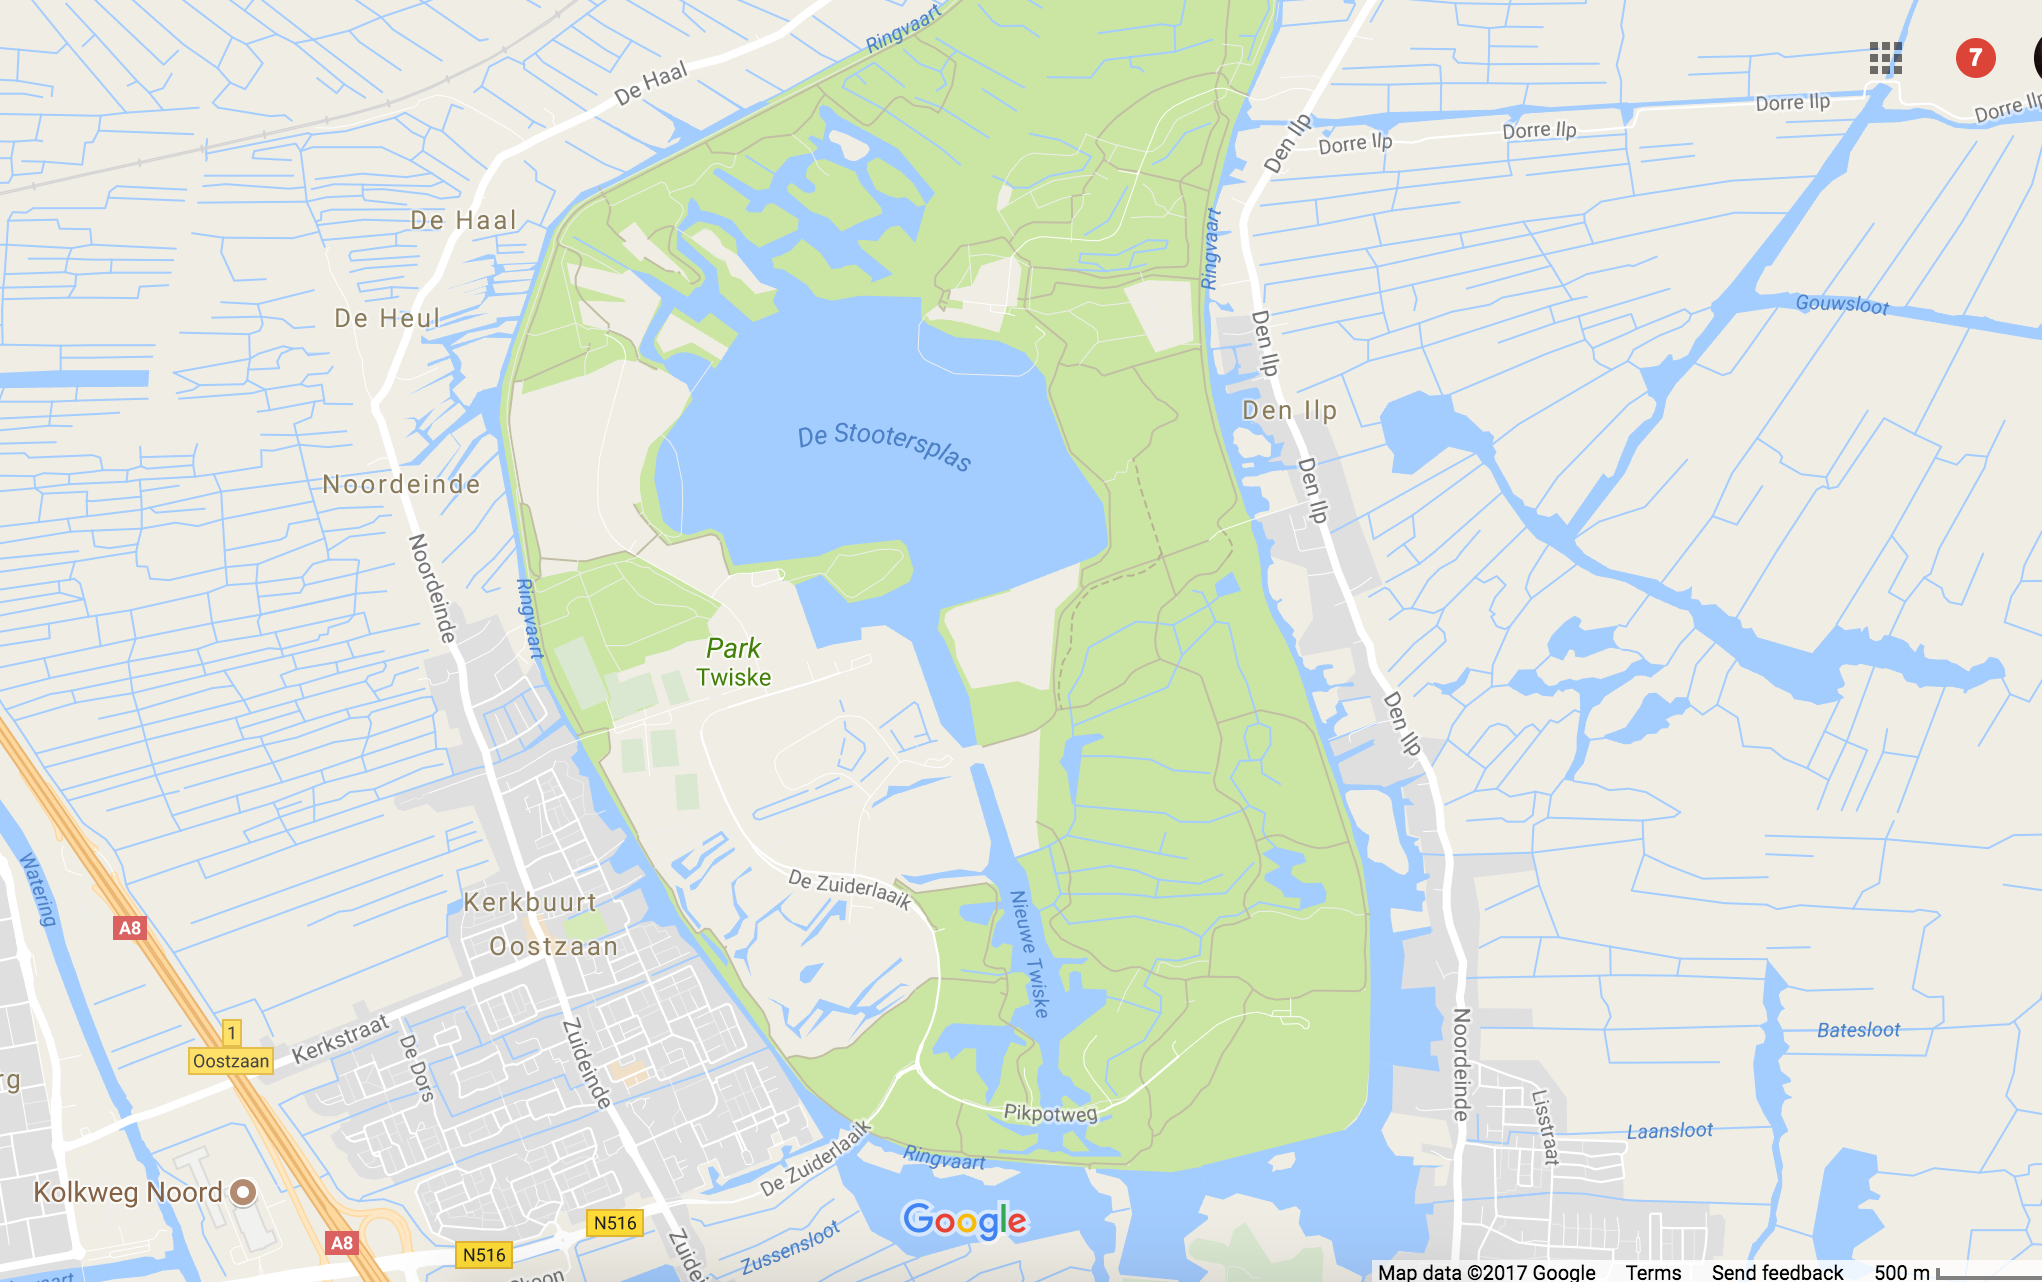 It's just North of Amsterdam about 16km. (10 miles)